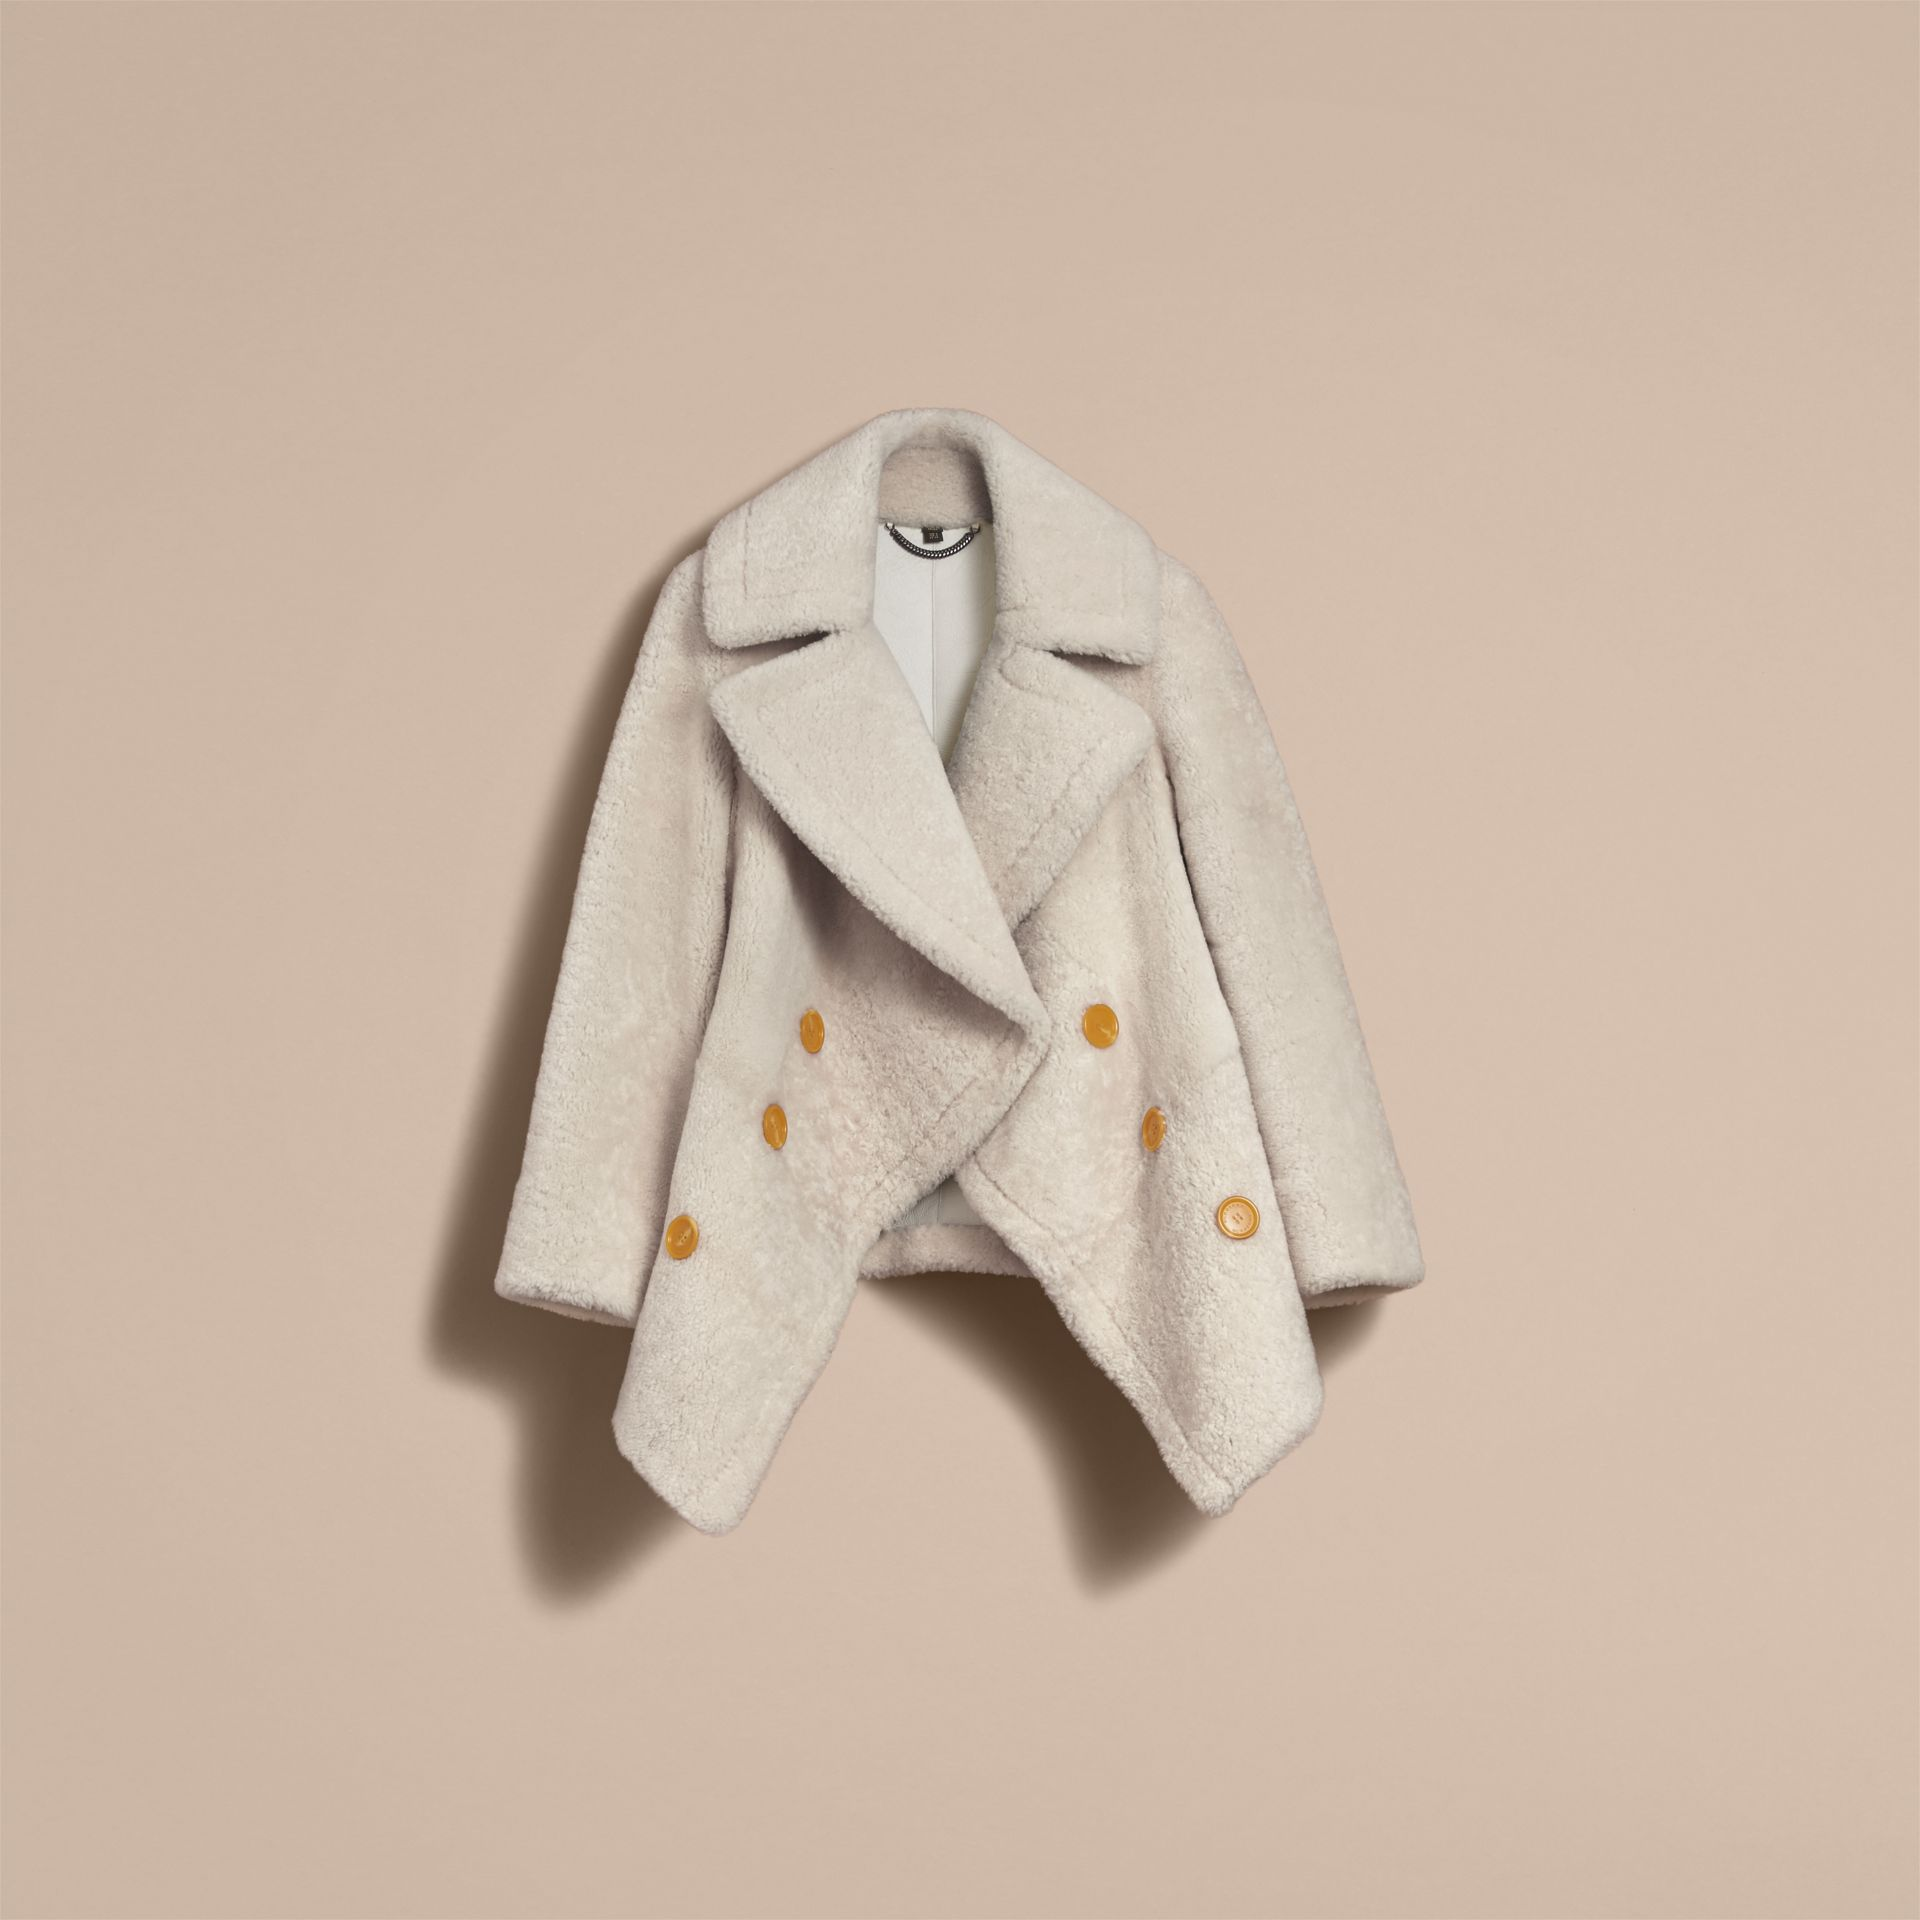 Oversize Collar Teddy Shearling Pea Coat in White - Women | Burberry - gallery image 4